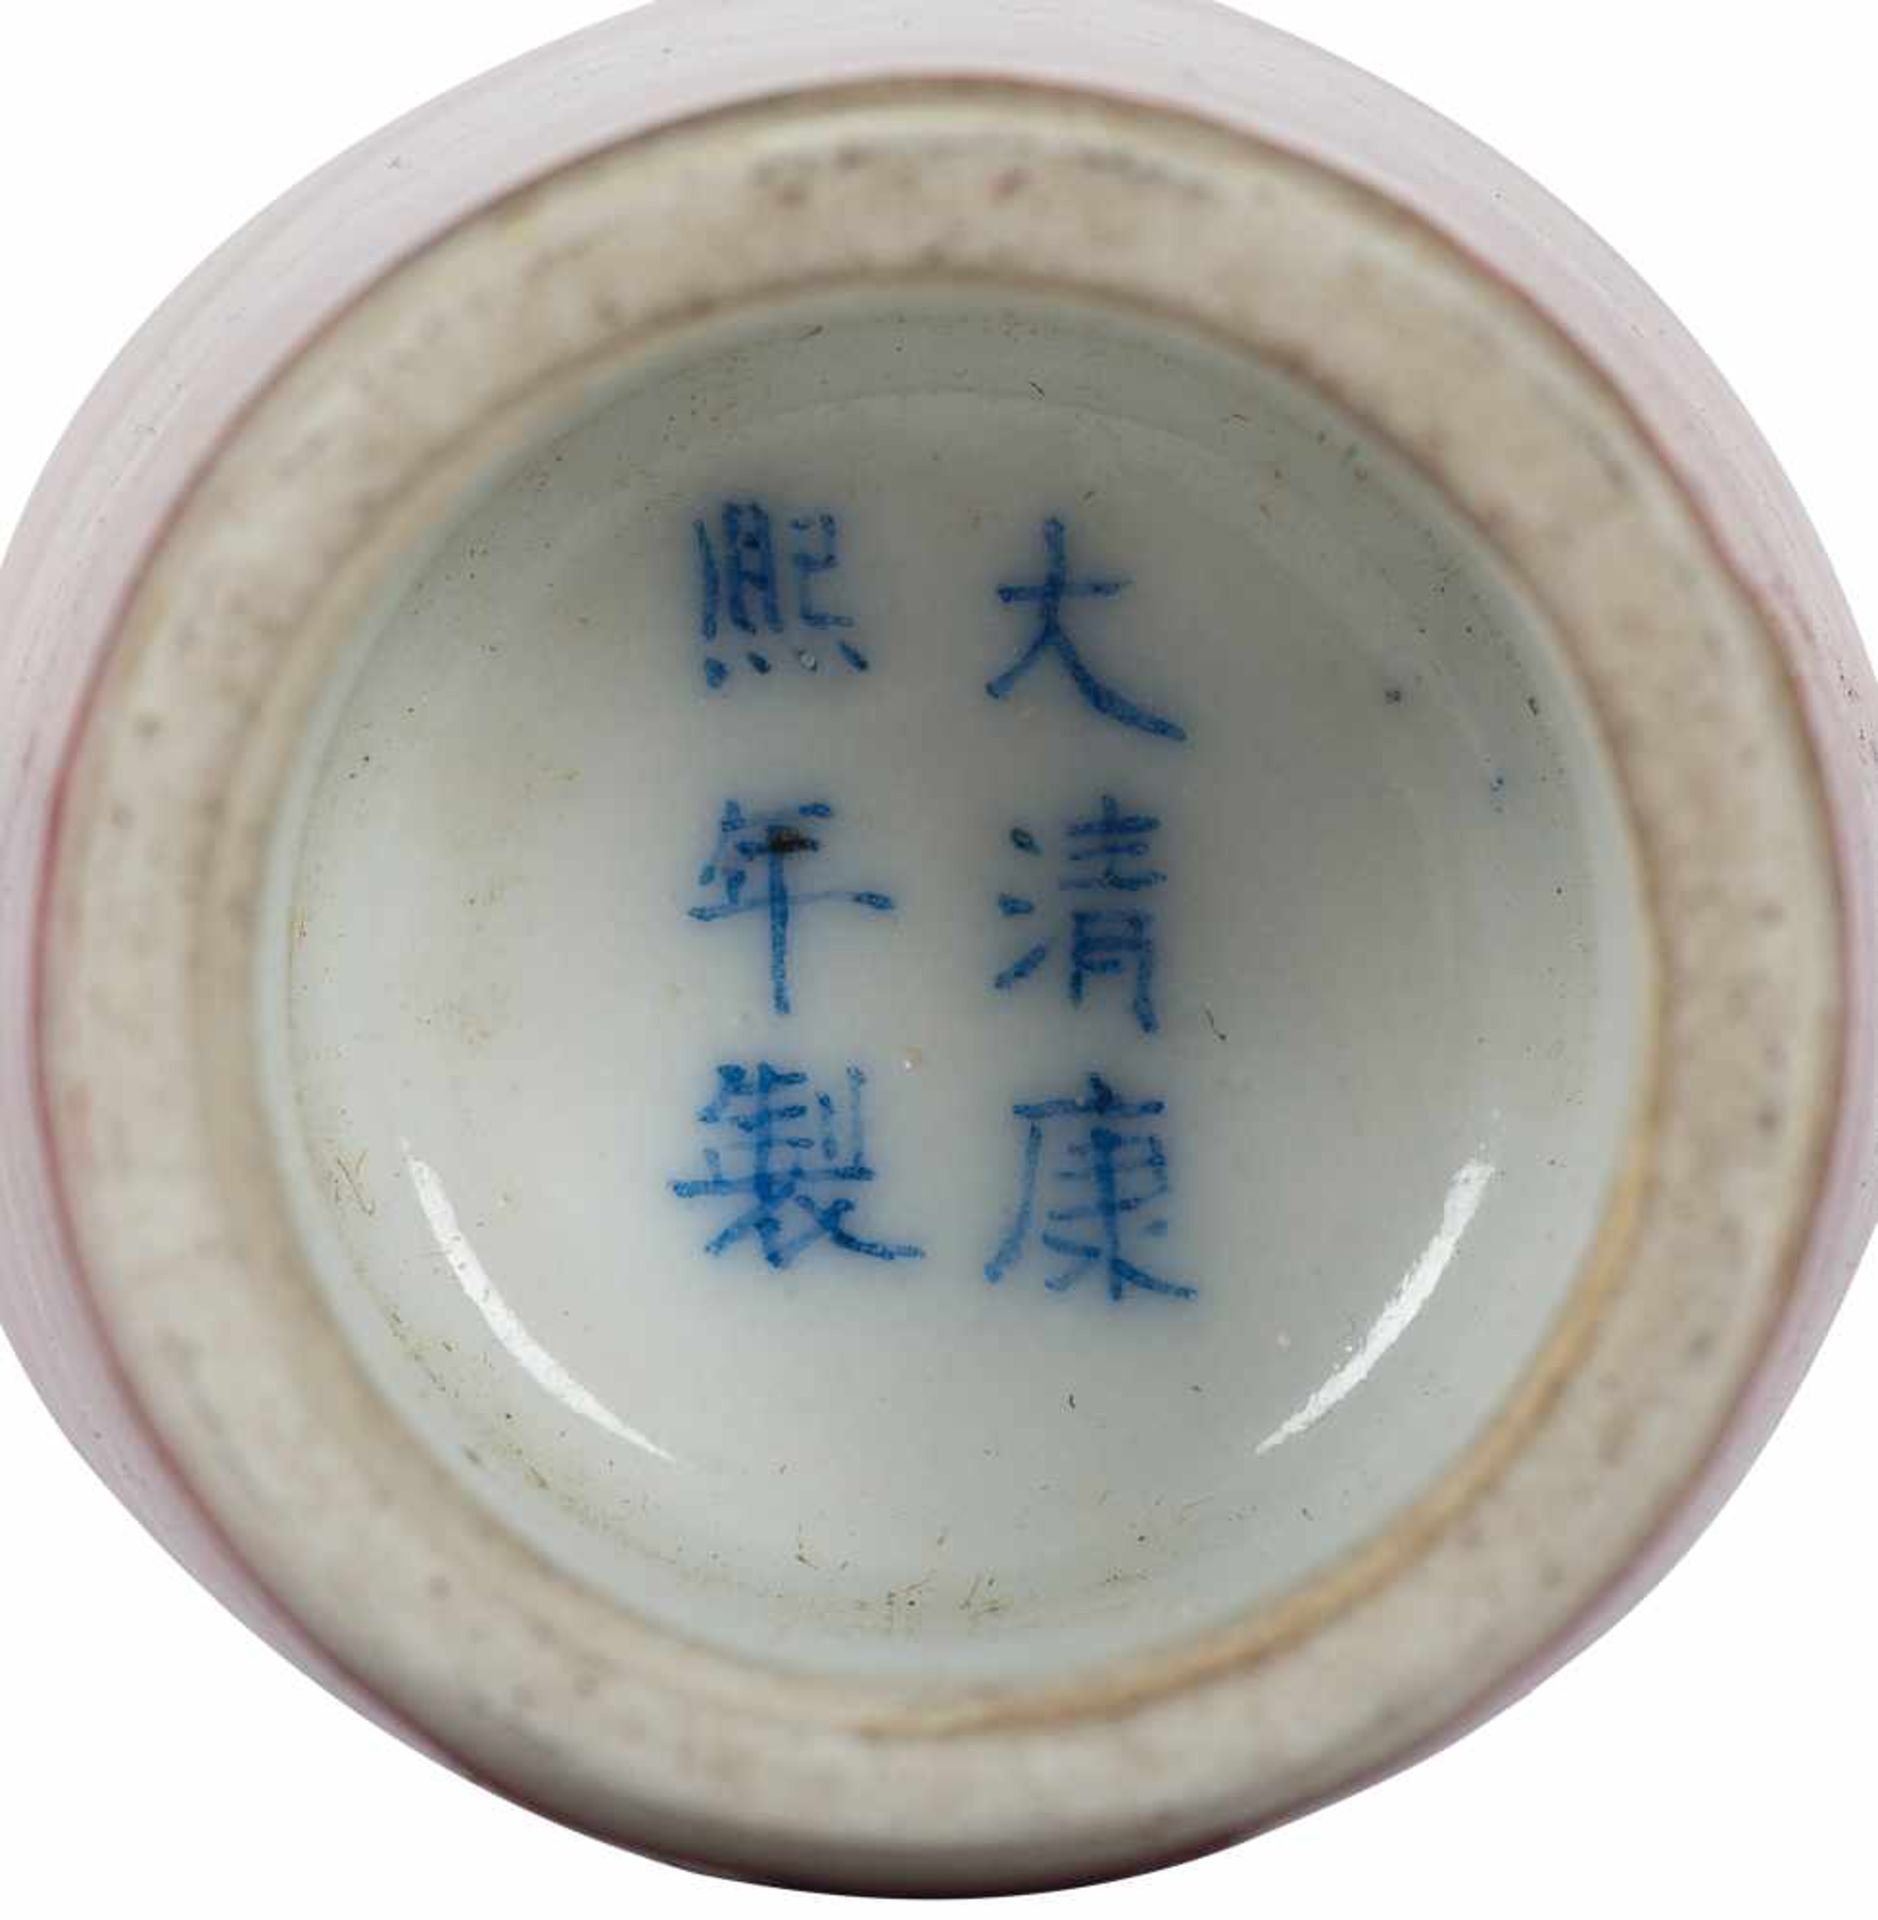 Los 9 - A copper-red glazed base. Kangxi seal mark inscribed with six characters. Qing dynasty (1644-